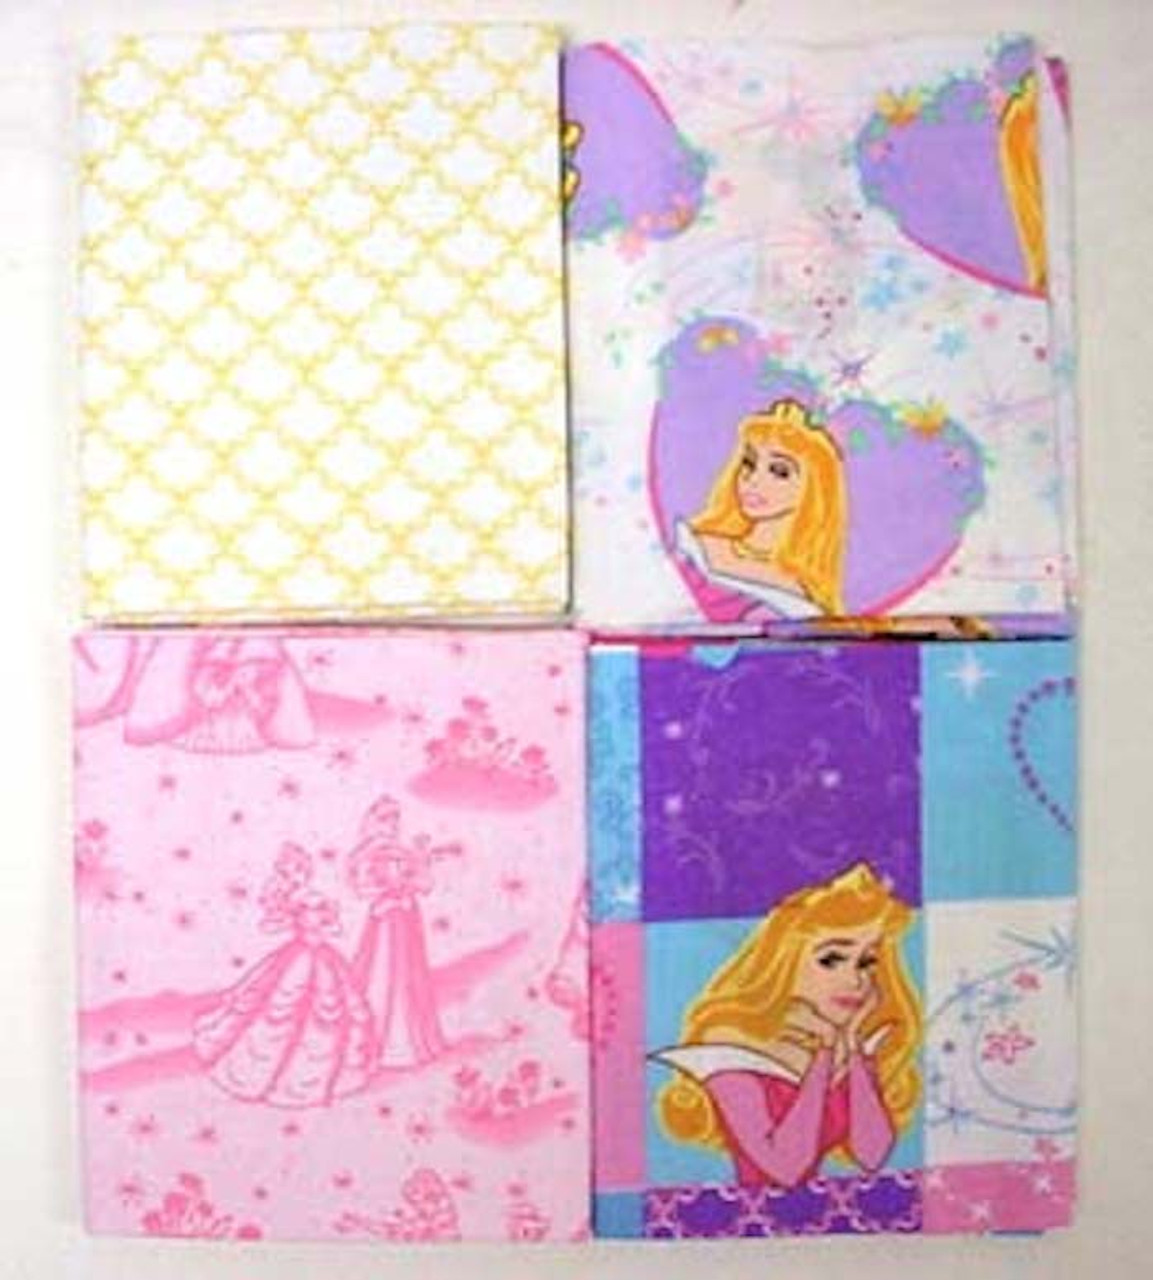 Disney Princess Fat Quarters Cotton Fabric Lot Of 4